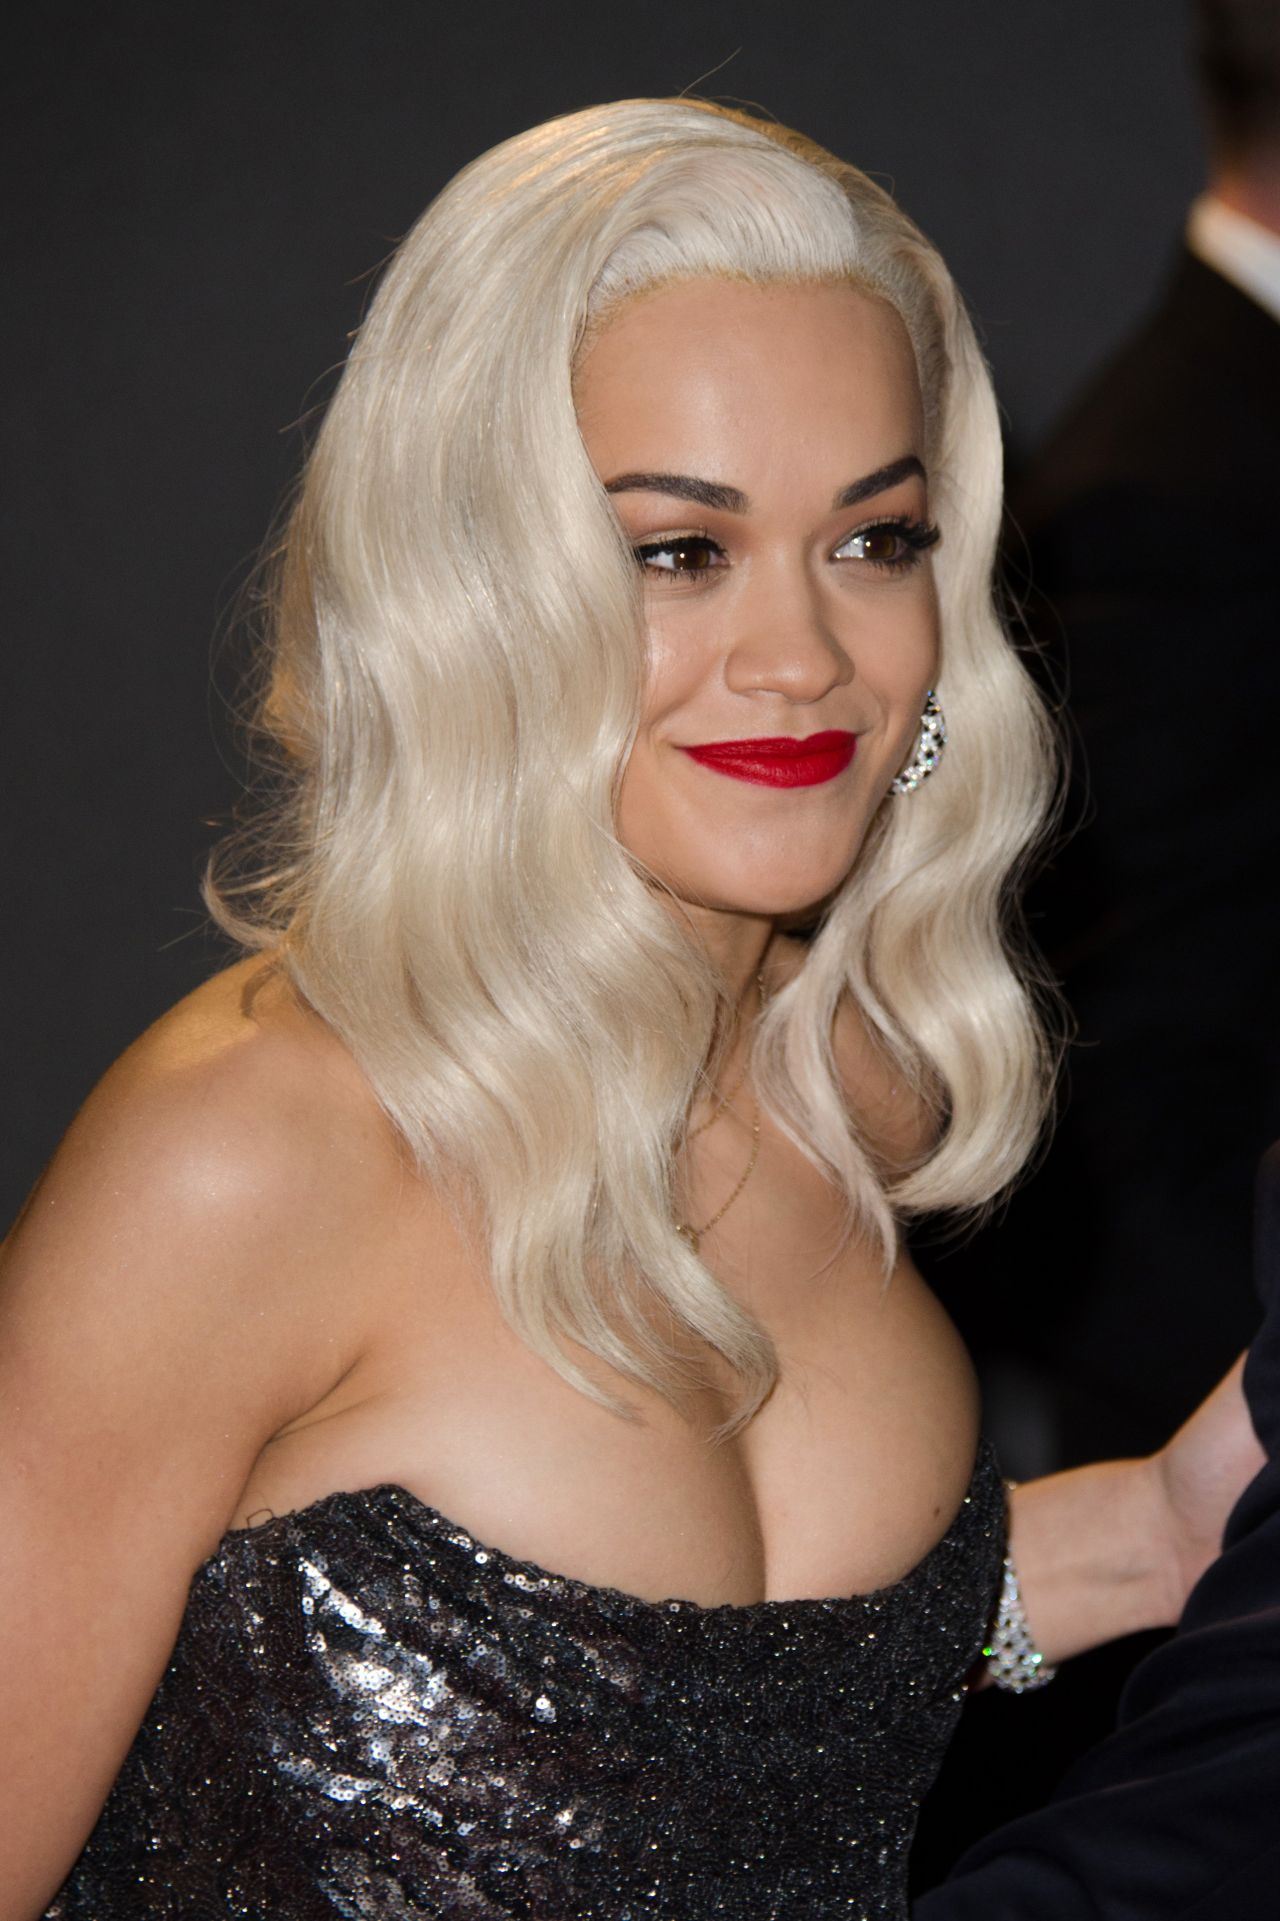 Rita Ora at The British Fashion Awards - London  December 2013